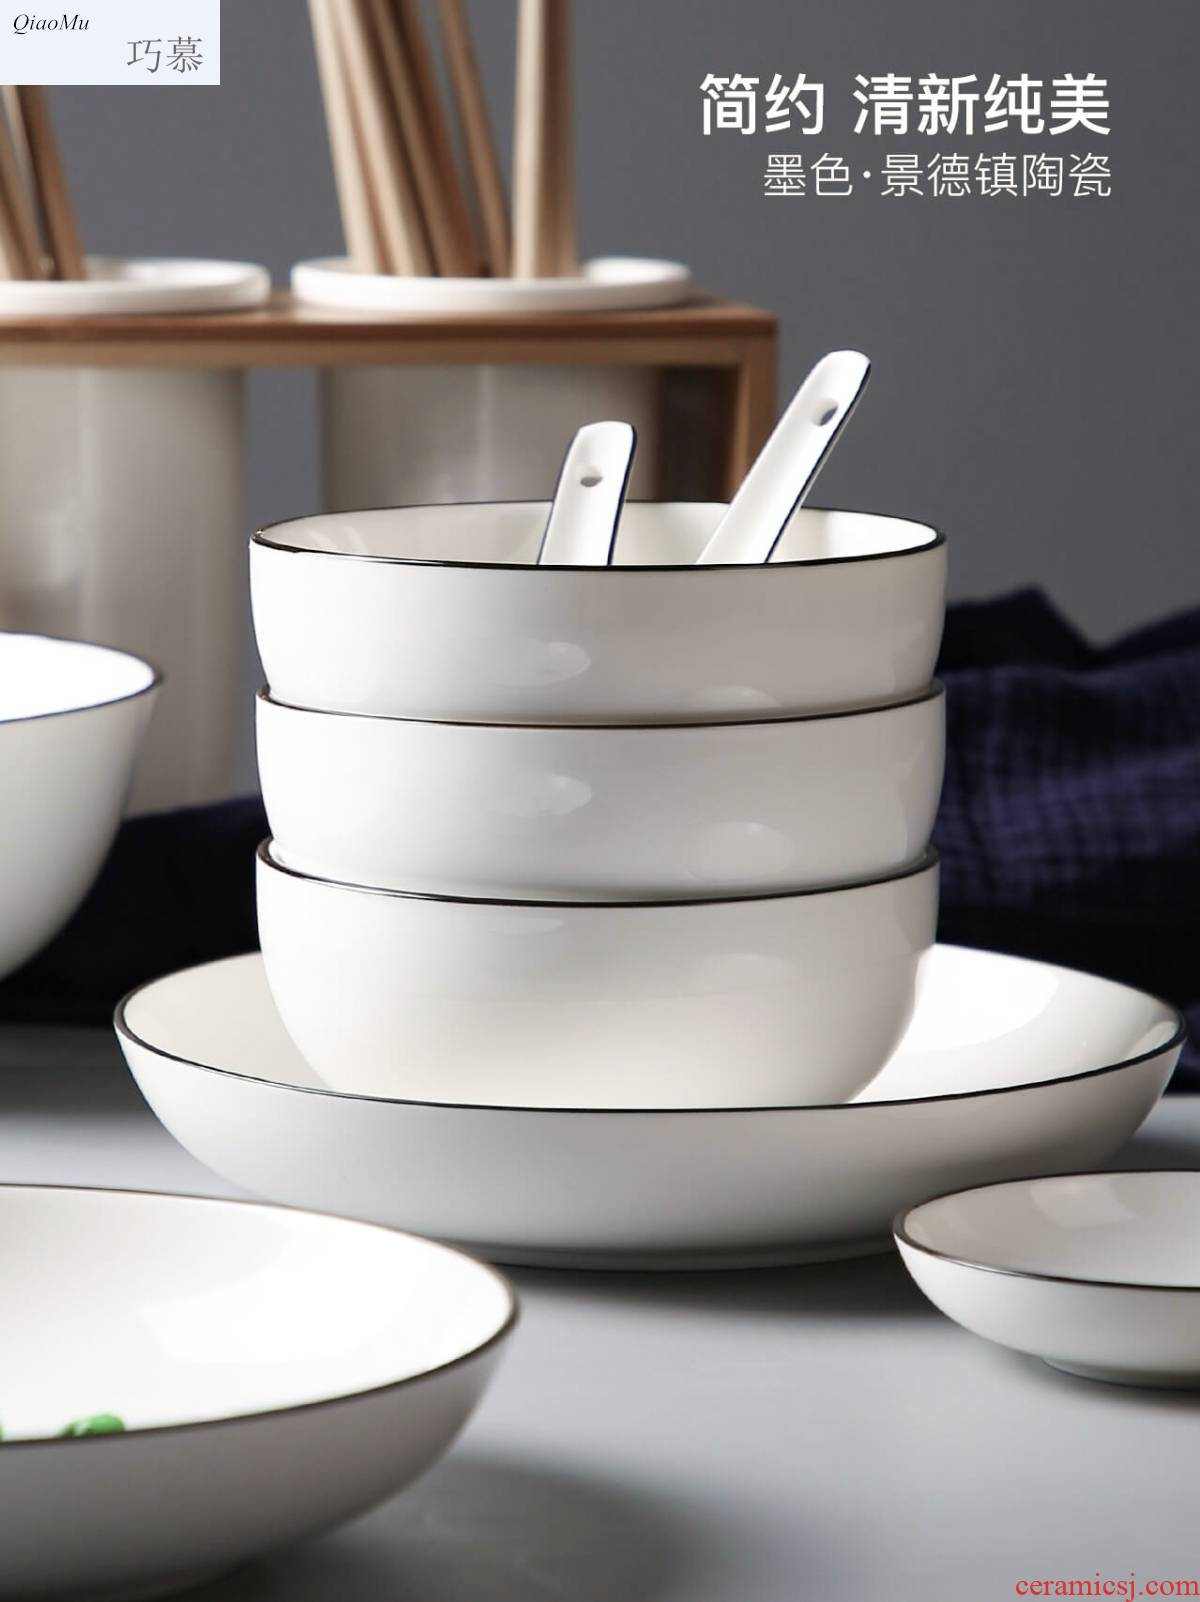 Qiao mu European household food dish plate ipads plate creative move nice ceramic tableware to eat bread and butter plate sets